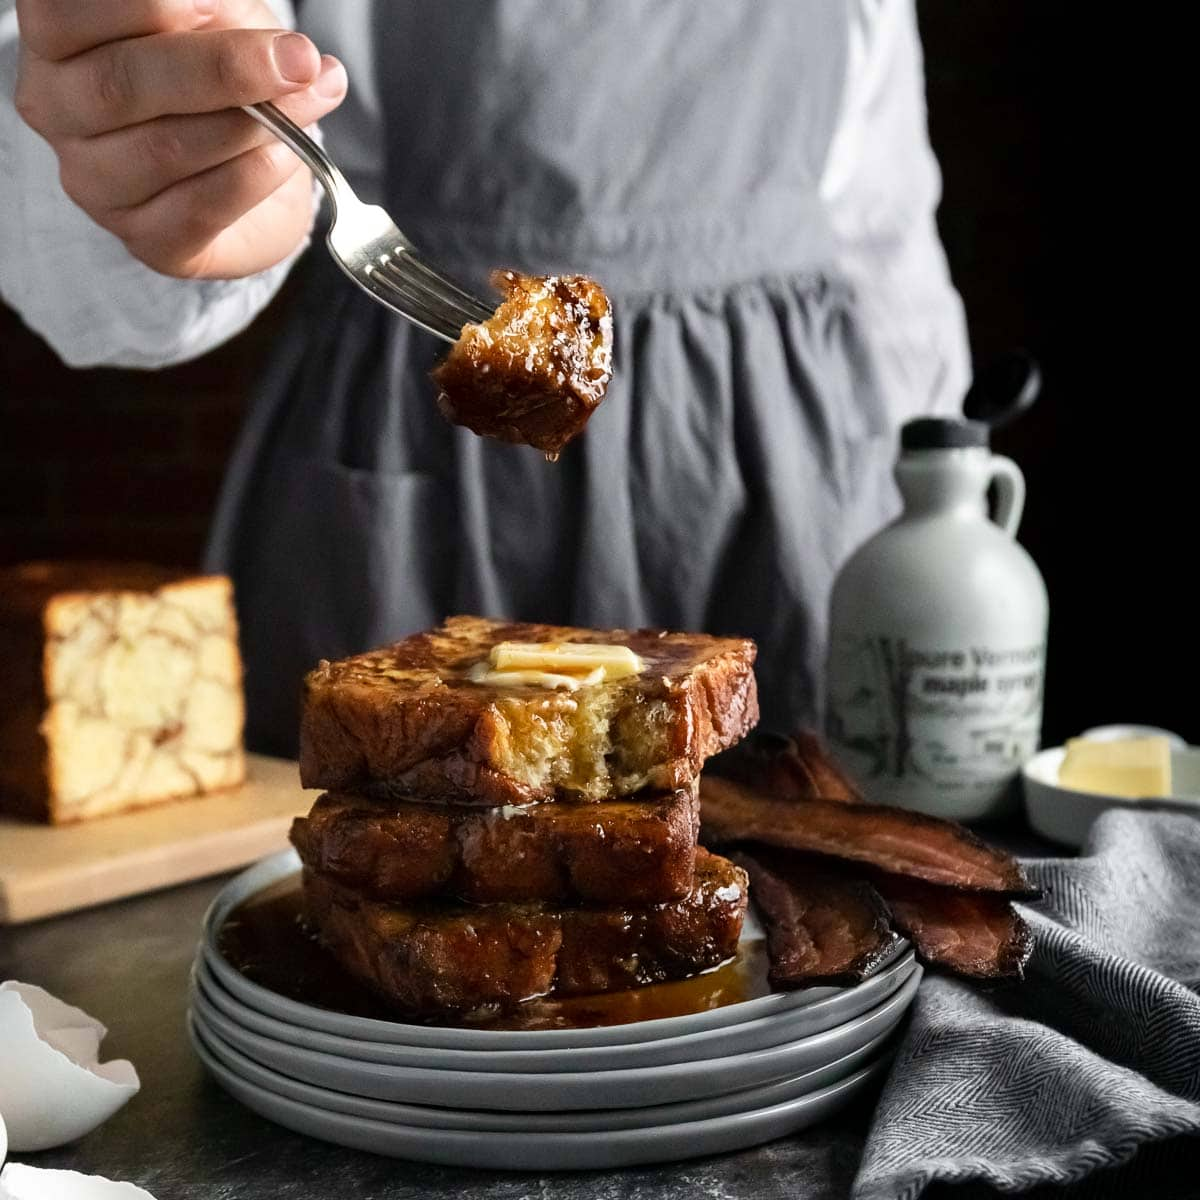 A bite of Monkey Bread French Toast on a fork being held above a tall stack of French toast